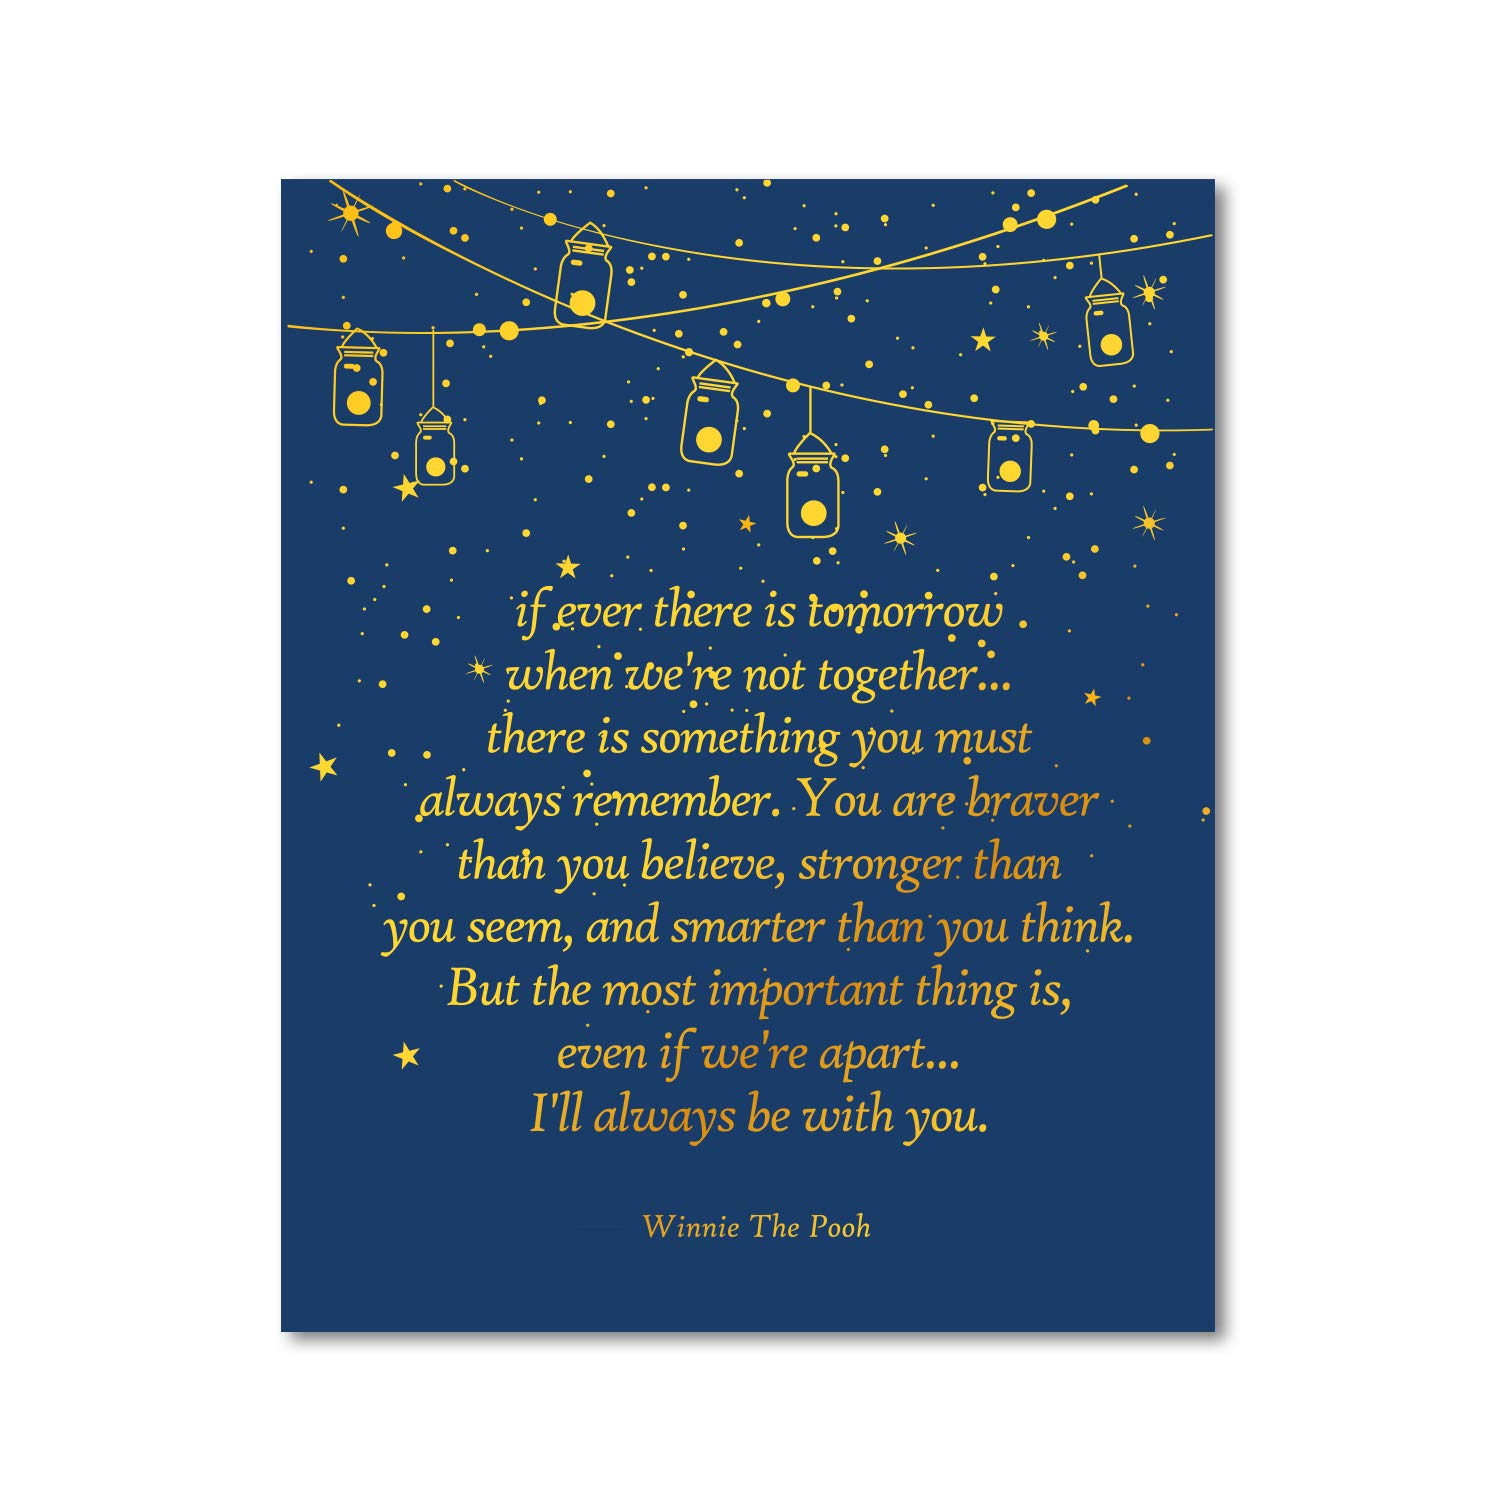 winnie the pooh quote gold foil print inspirational quotes